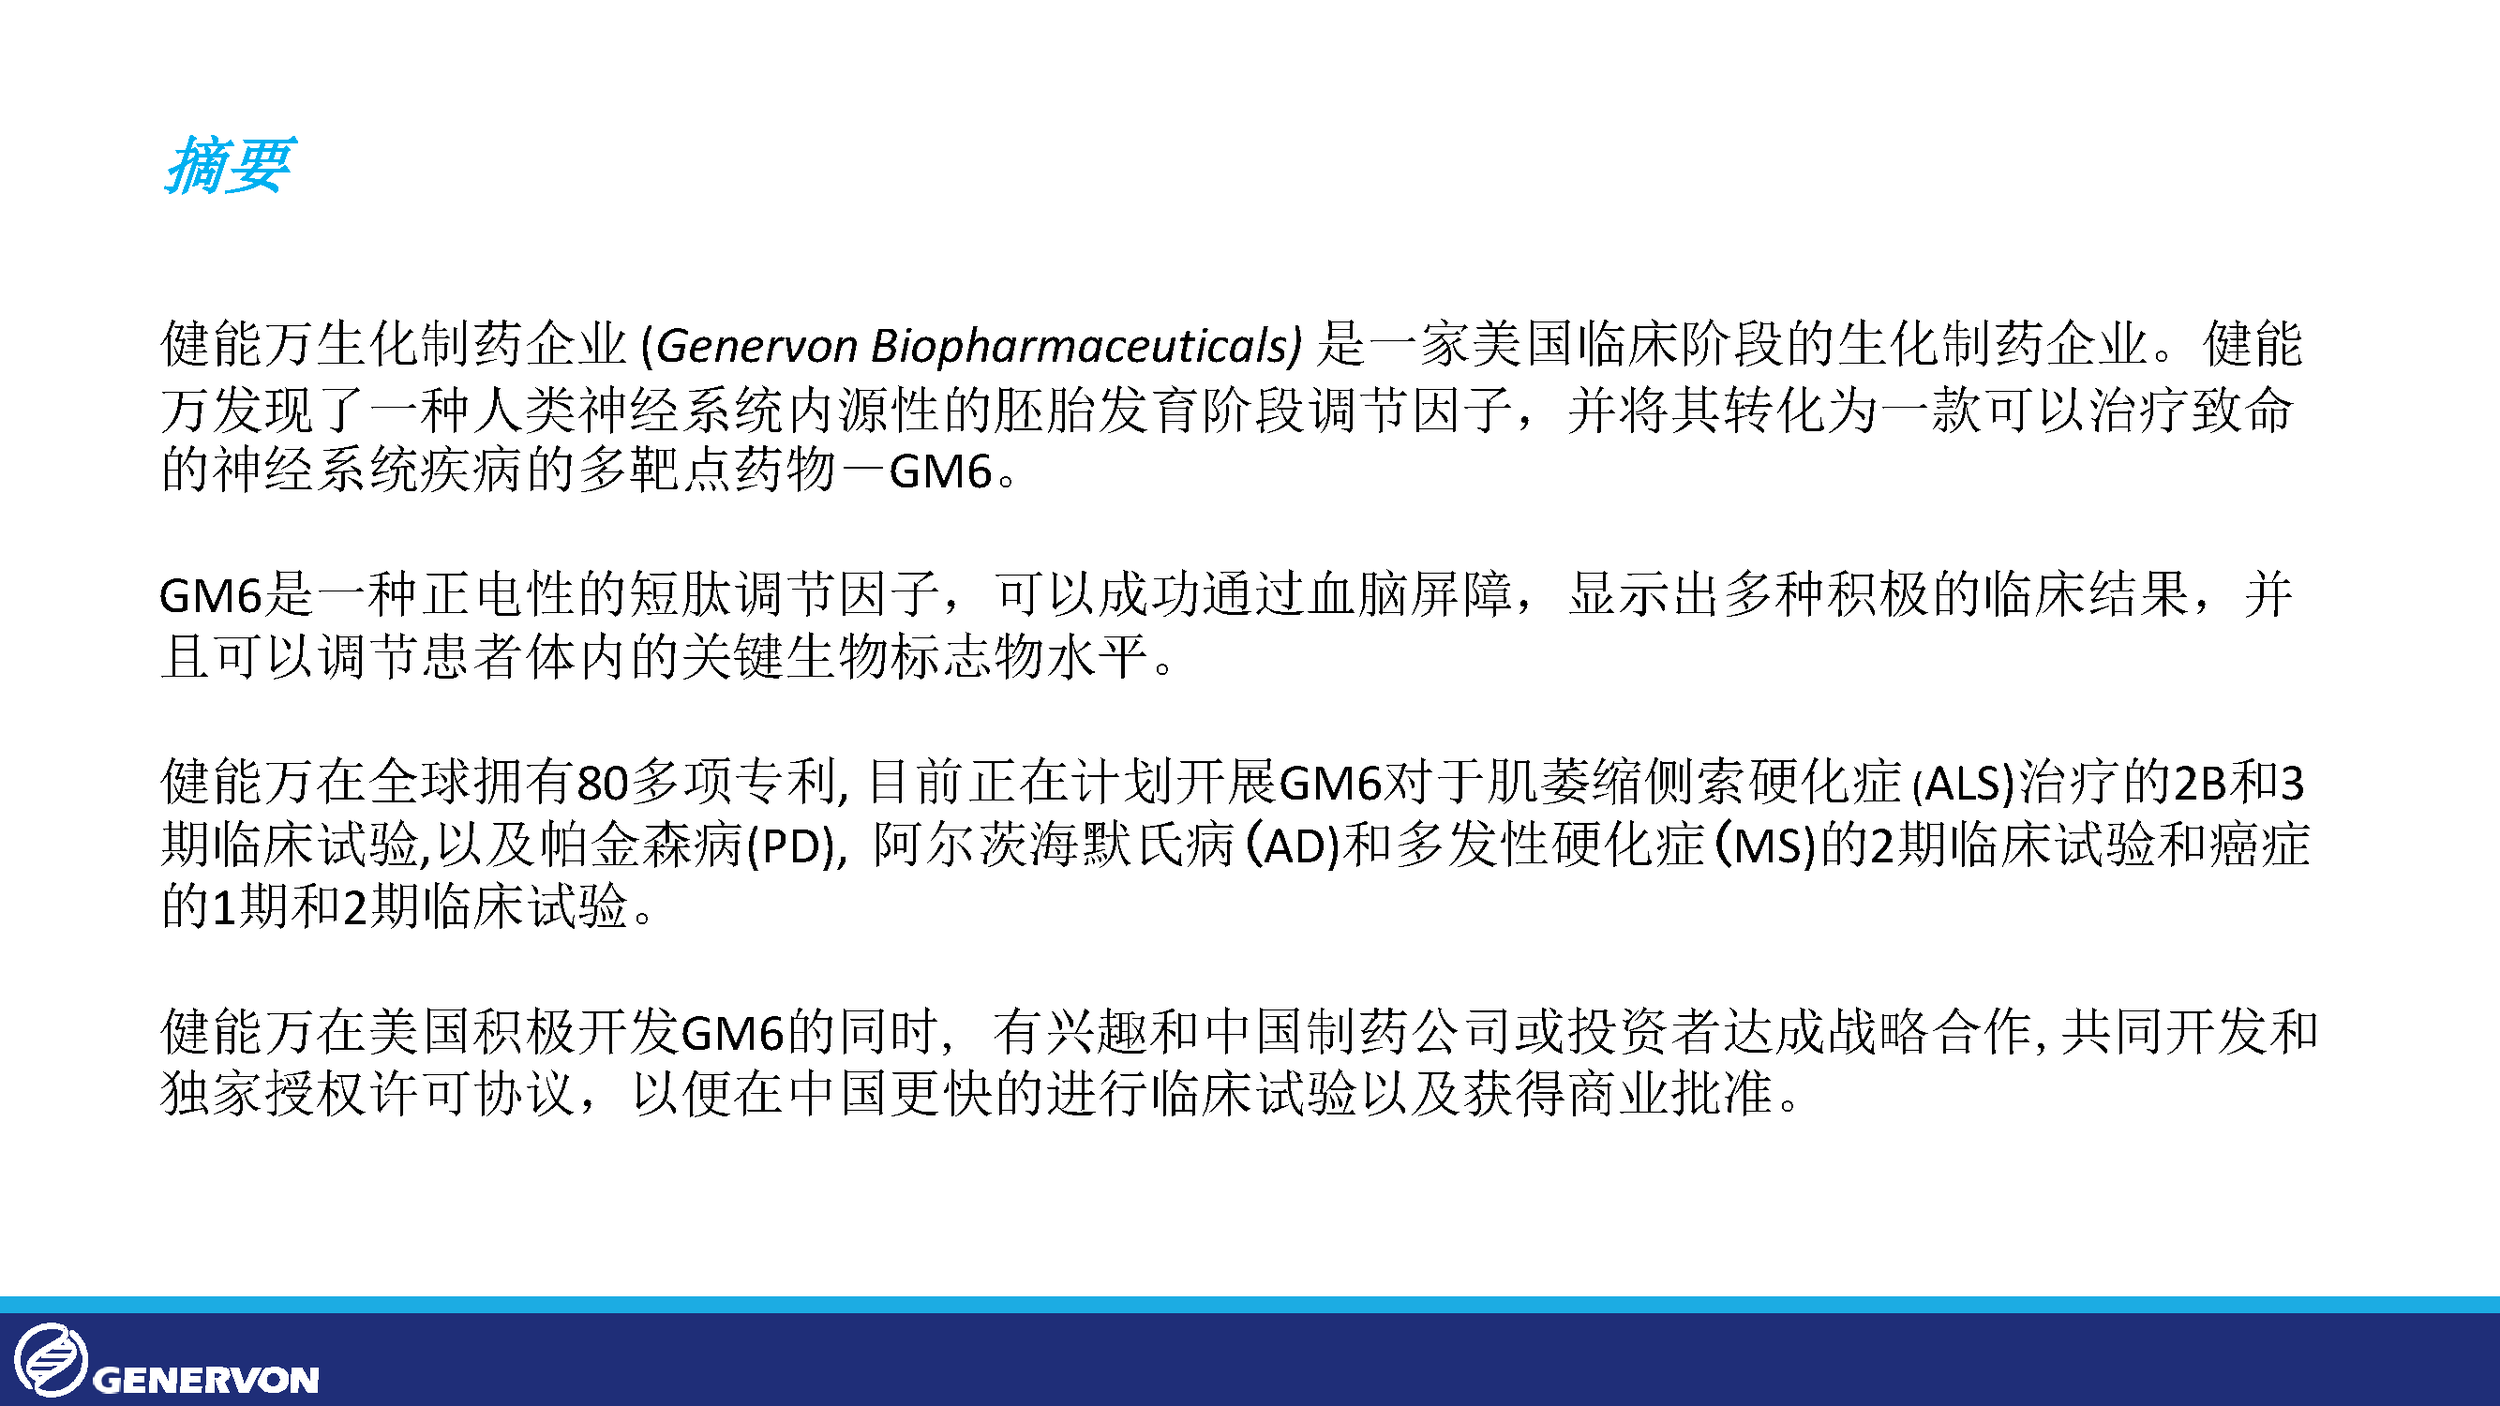 WuXi Presentation Chinese_Page_1.png